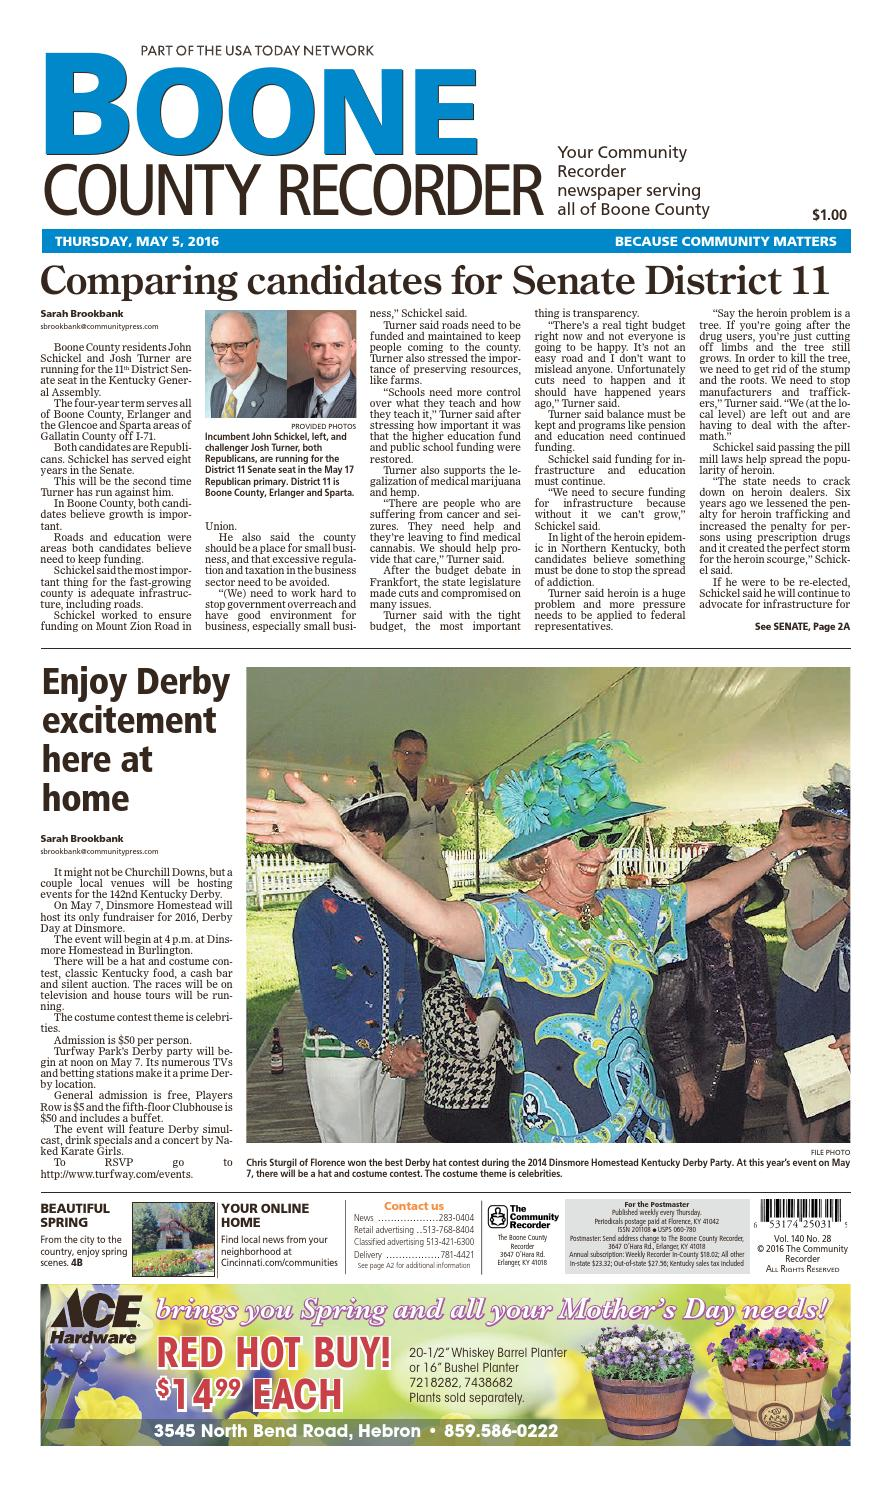 Boone county recorder 050516 by Enquirer Media - issuu 75c52351376